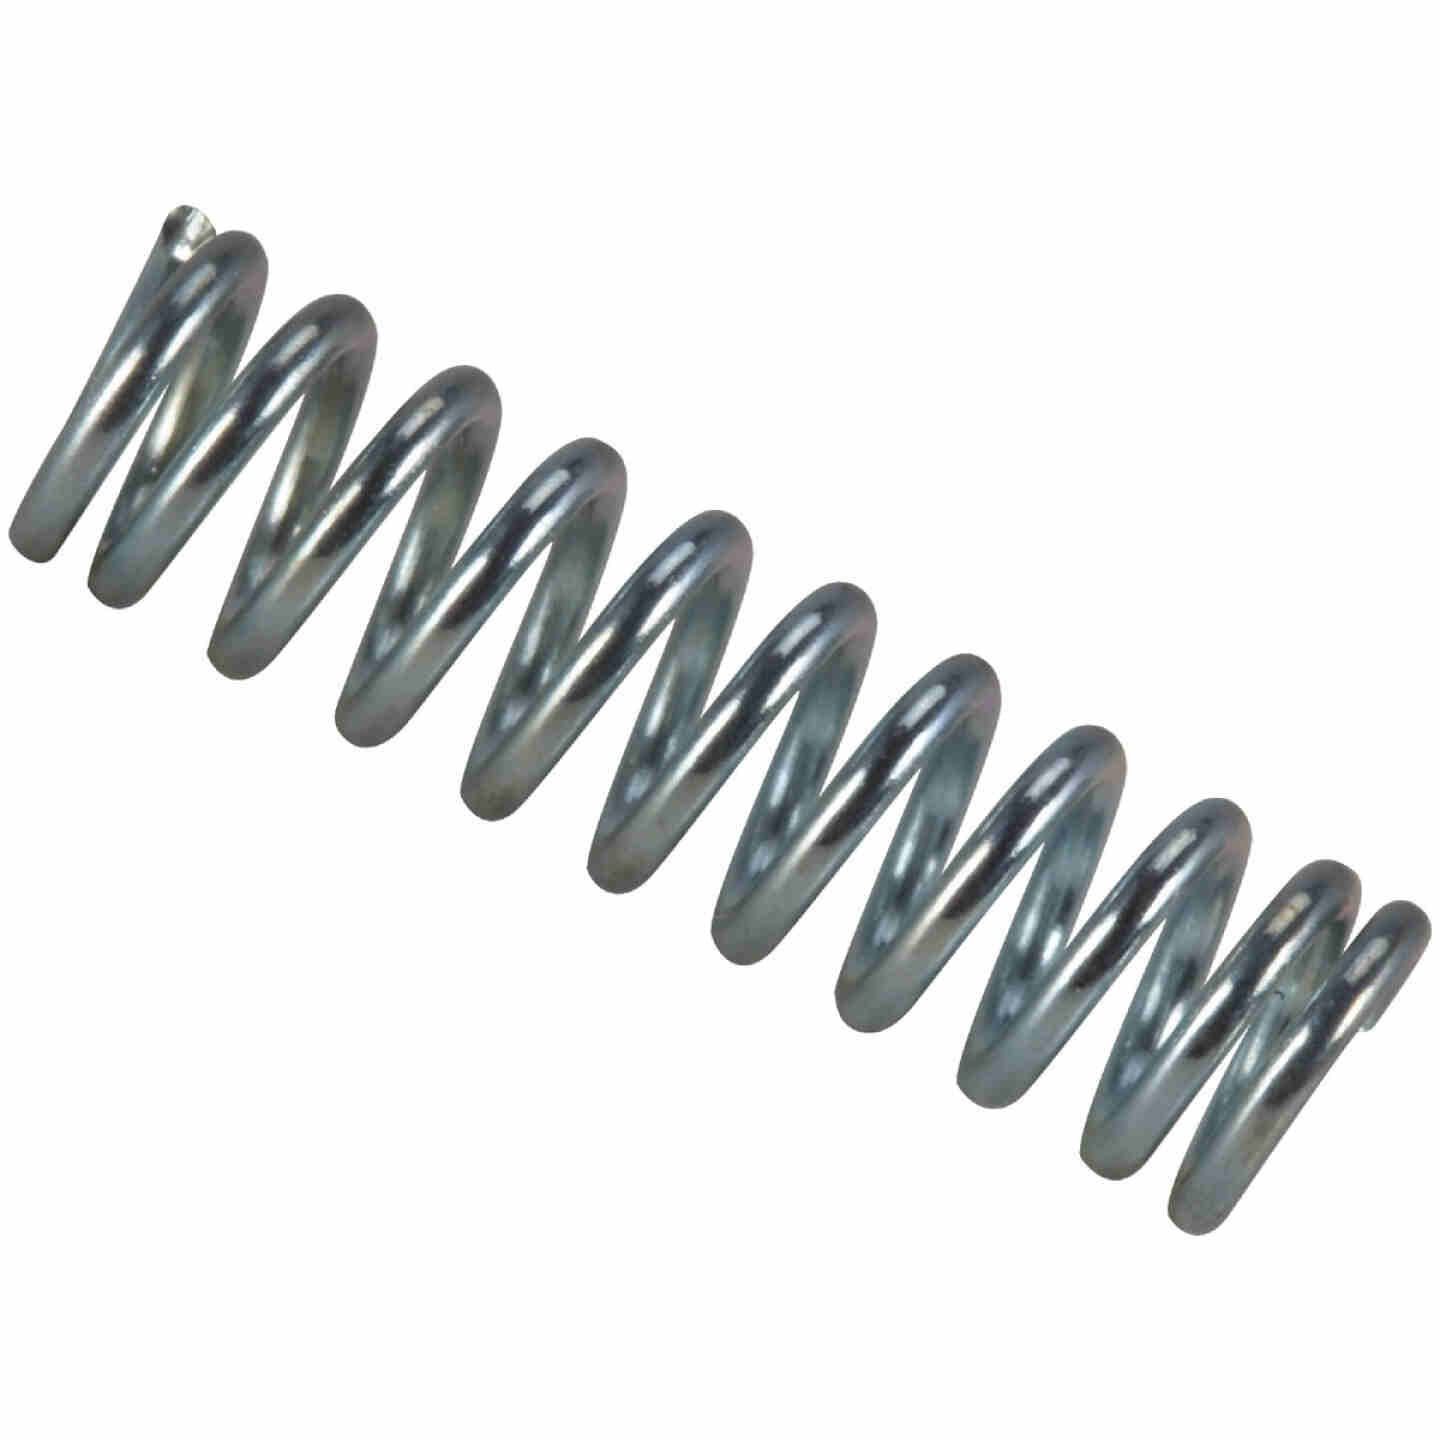 Century Spring 1-3/8 In. x 1/8 In. Compression Spring (6 Count) Image 1